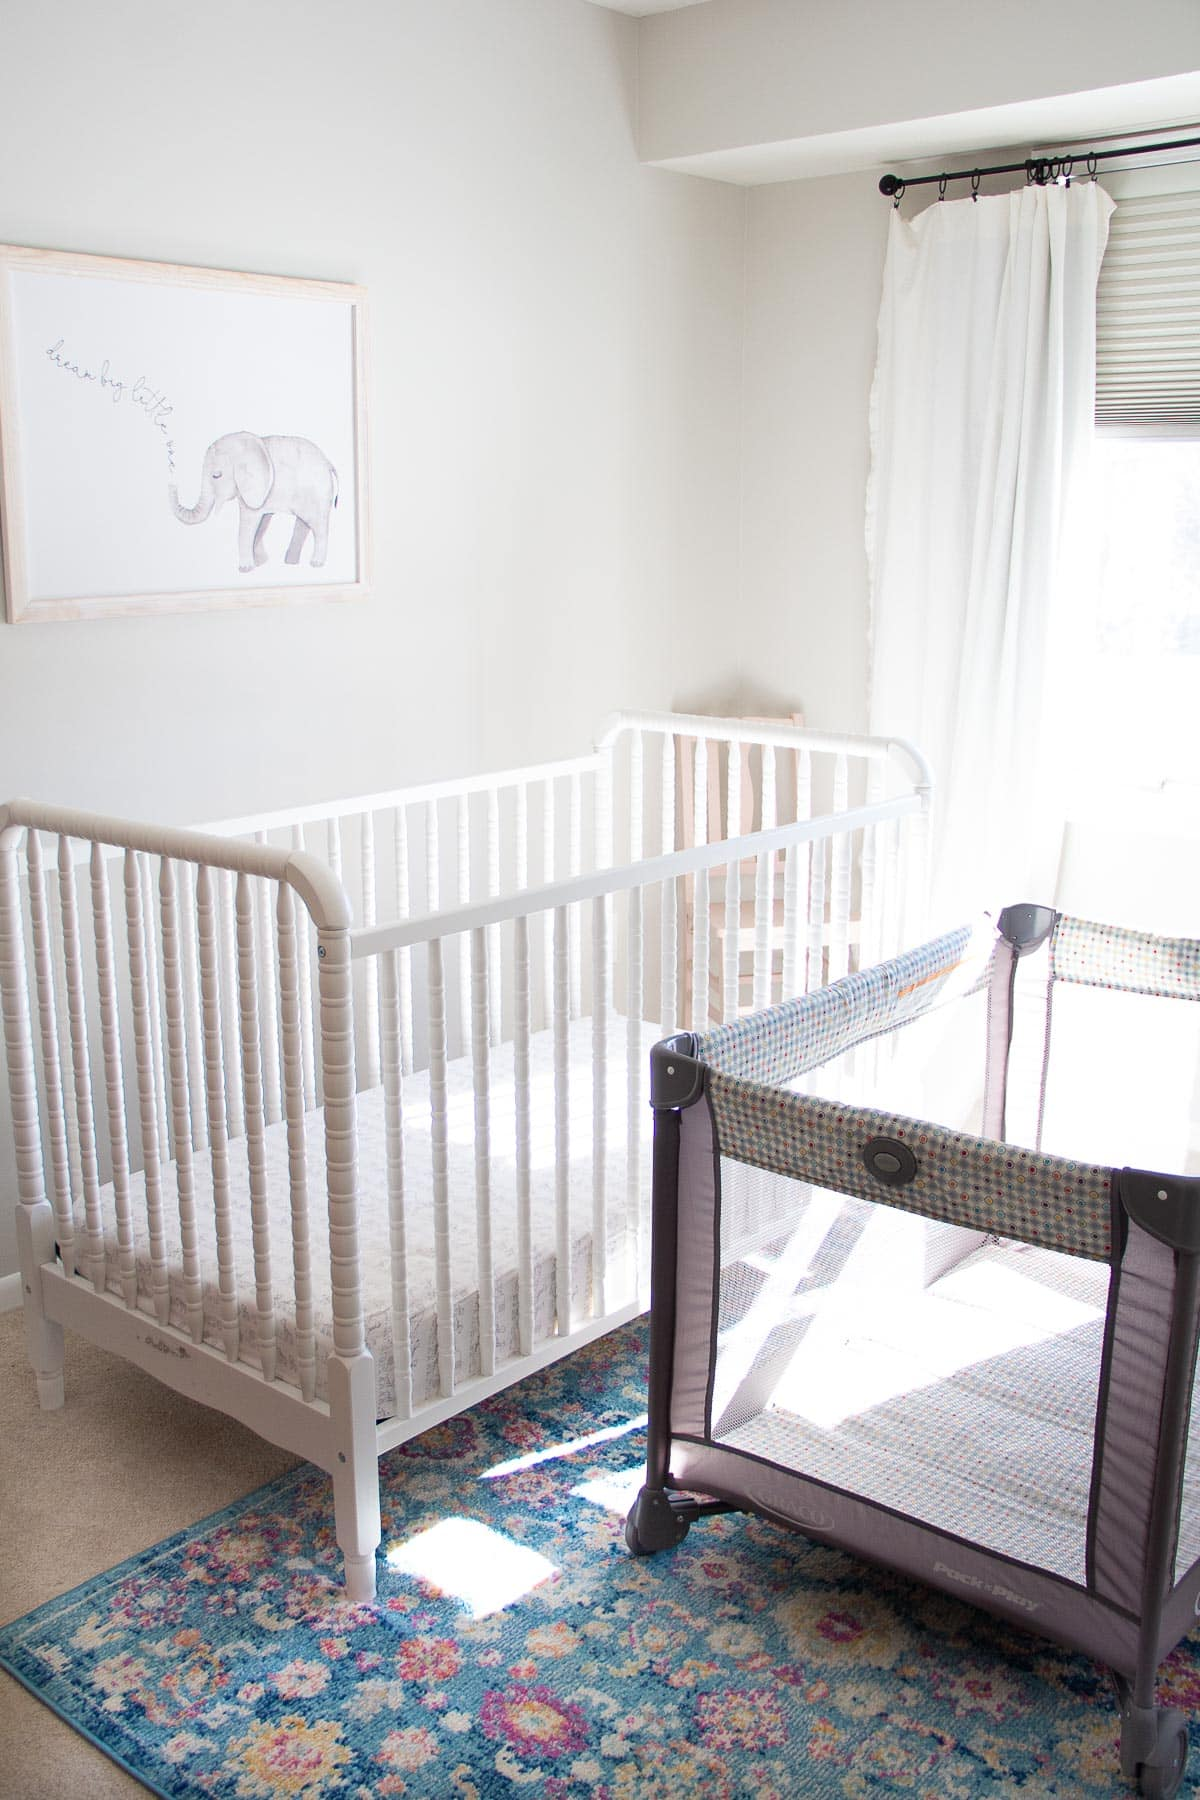 A white Jenny Lind Crib alongside a gray Graco pack and play.